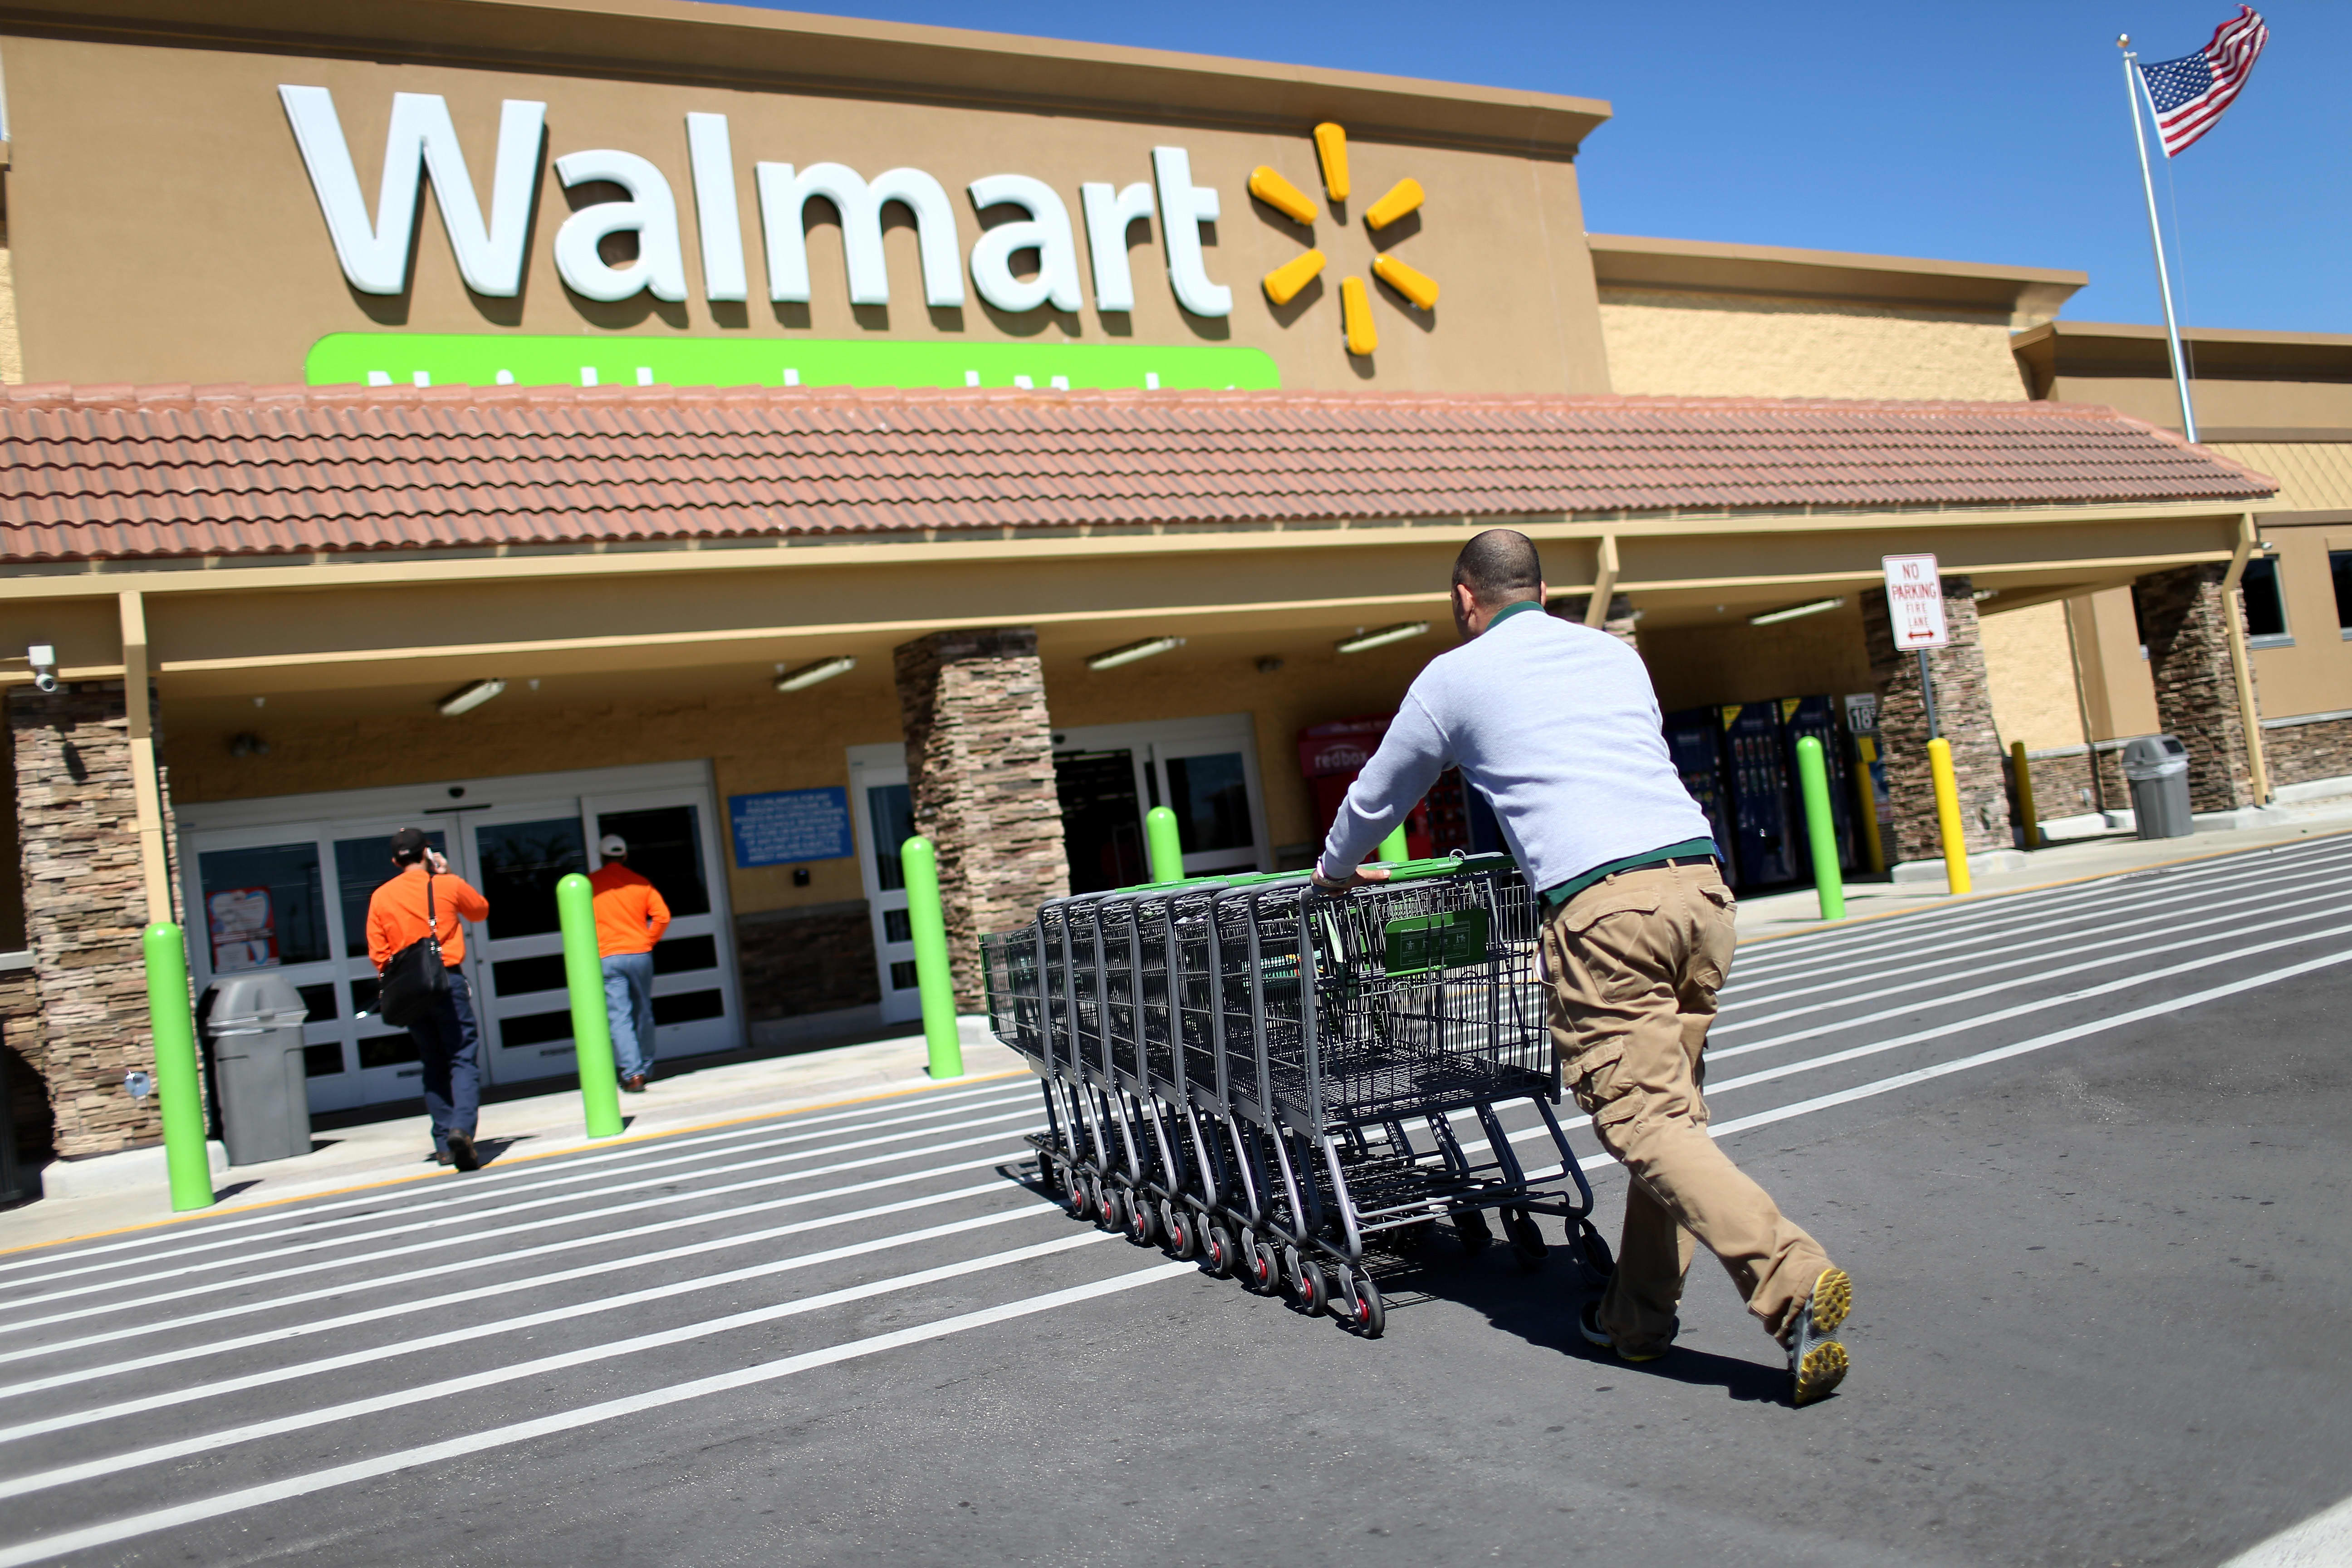 Walmart to test self-driving delivery from warehouse to warehouse